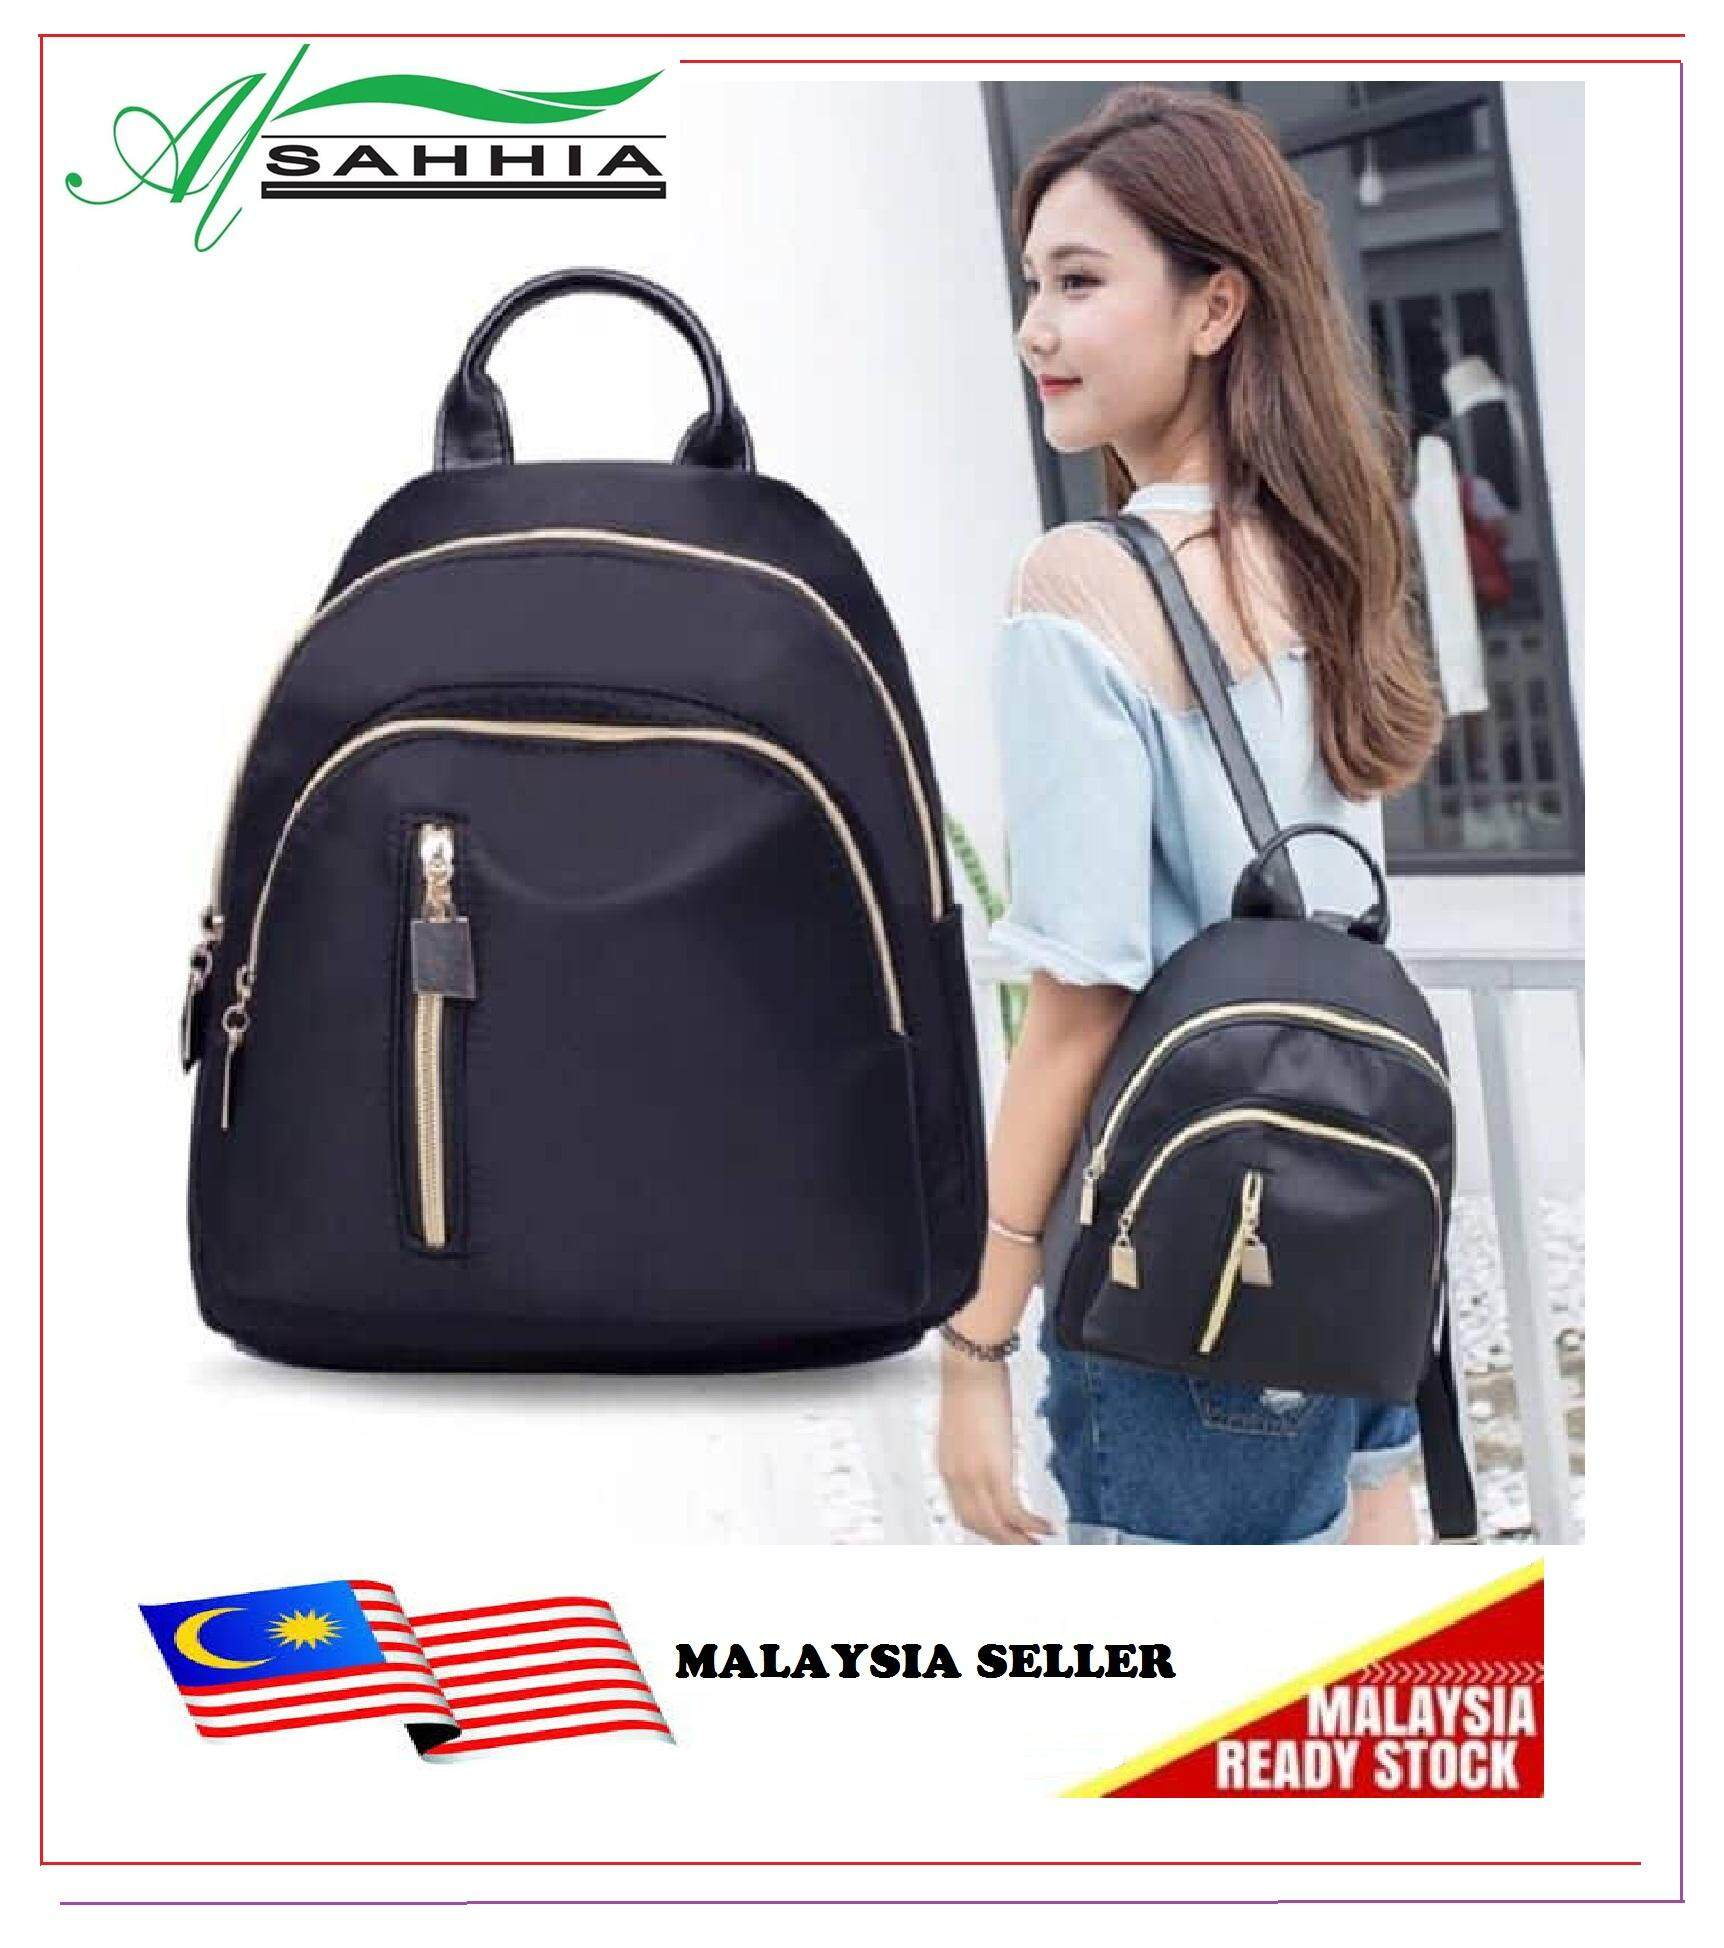 Al Sahhia Ready Stock Middle Straight Zip Backpack Casual Lady Beg